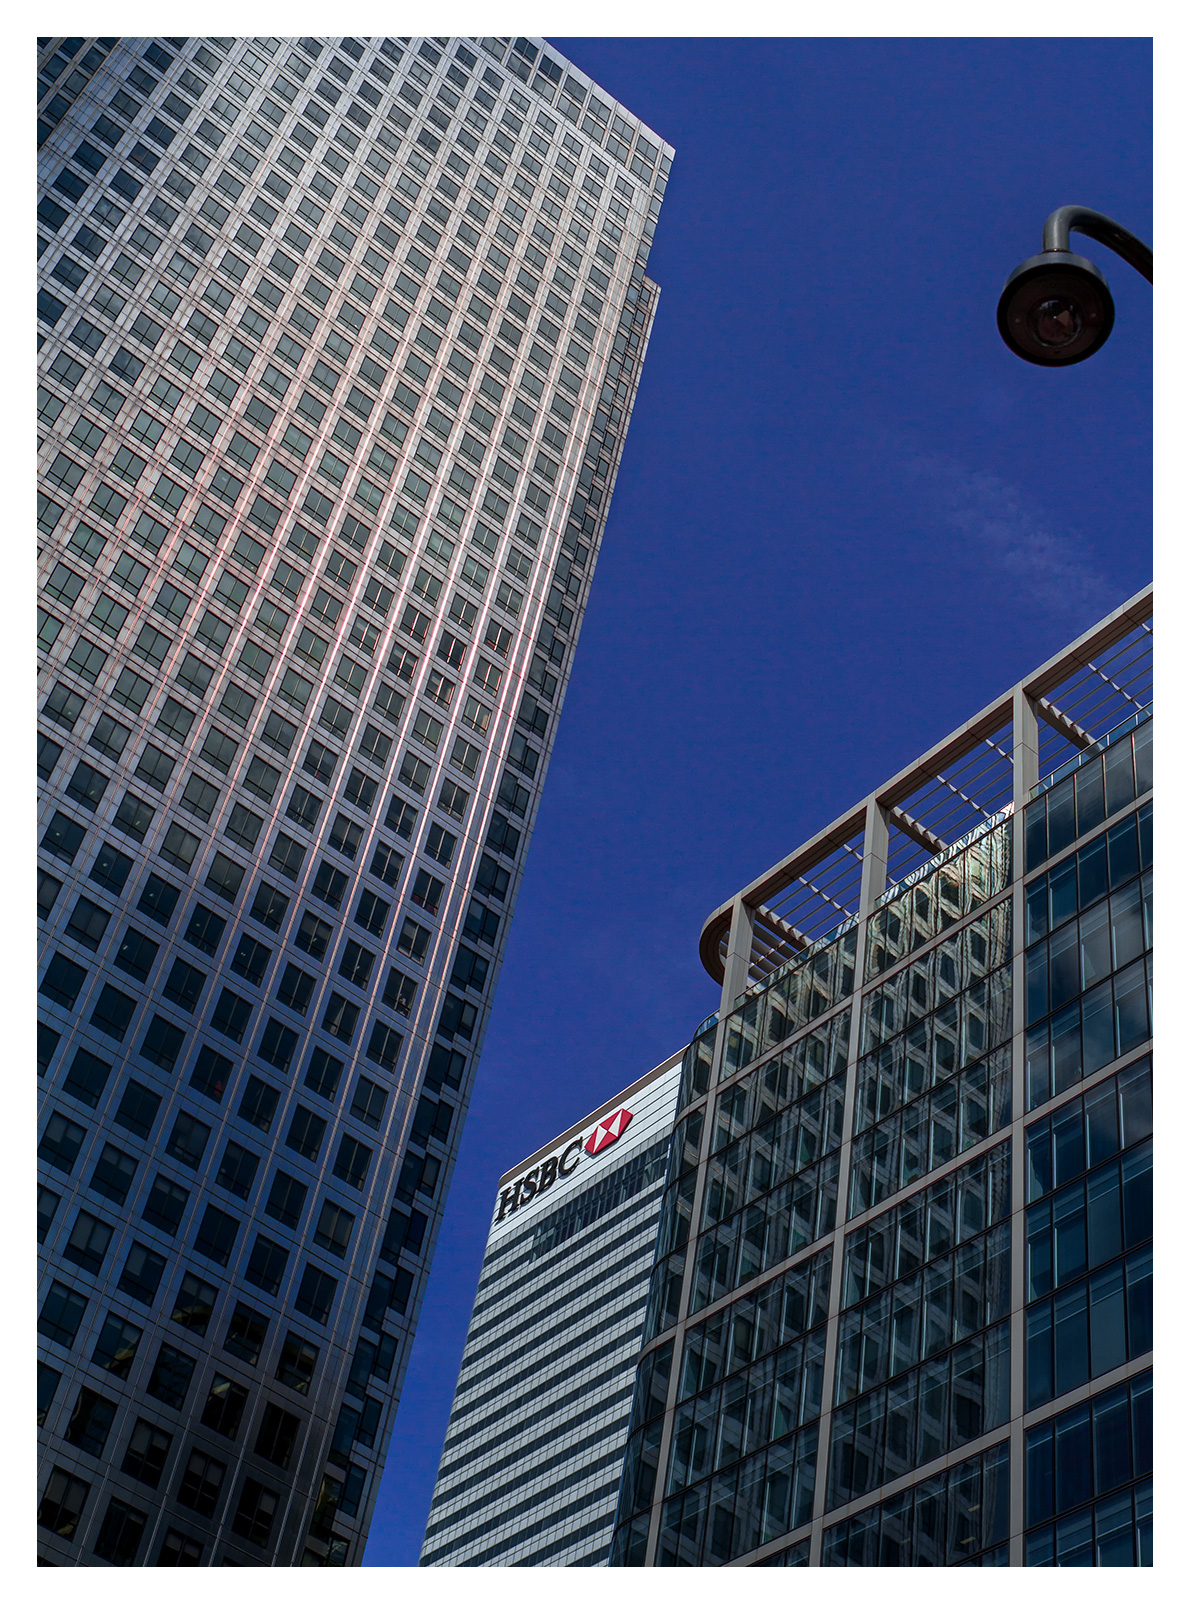 London Architecture, HSBC Bank, Canada Square, Canary Wharf, London